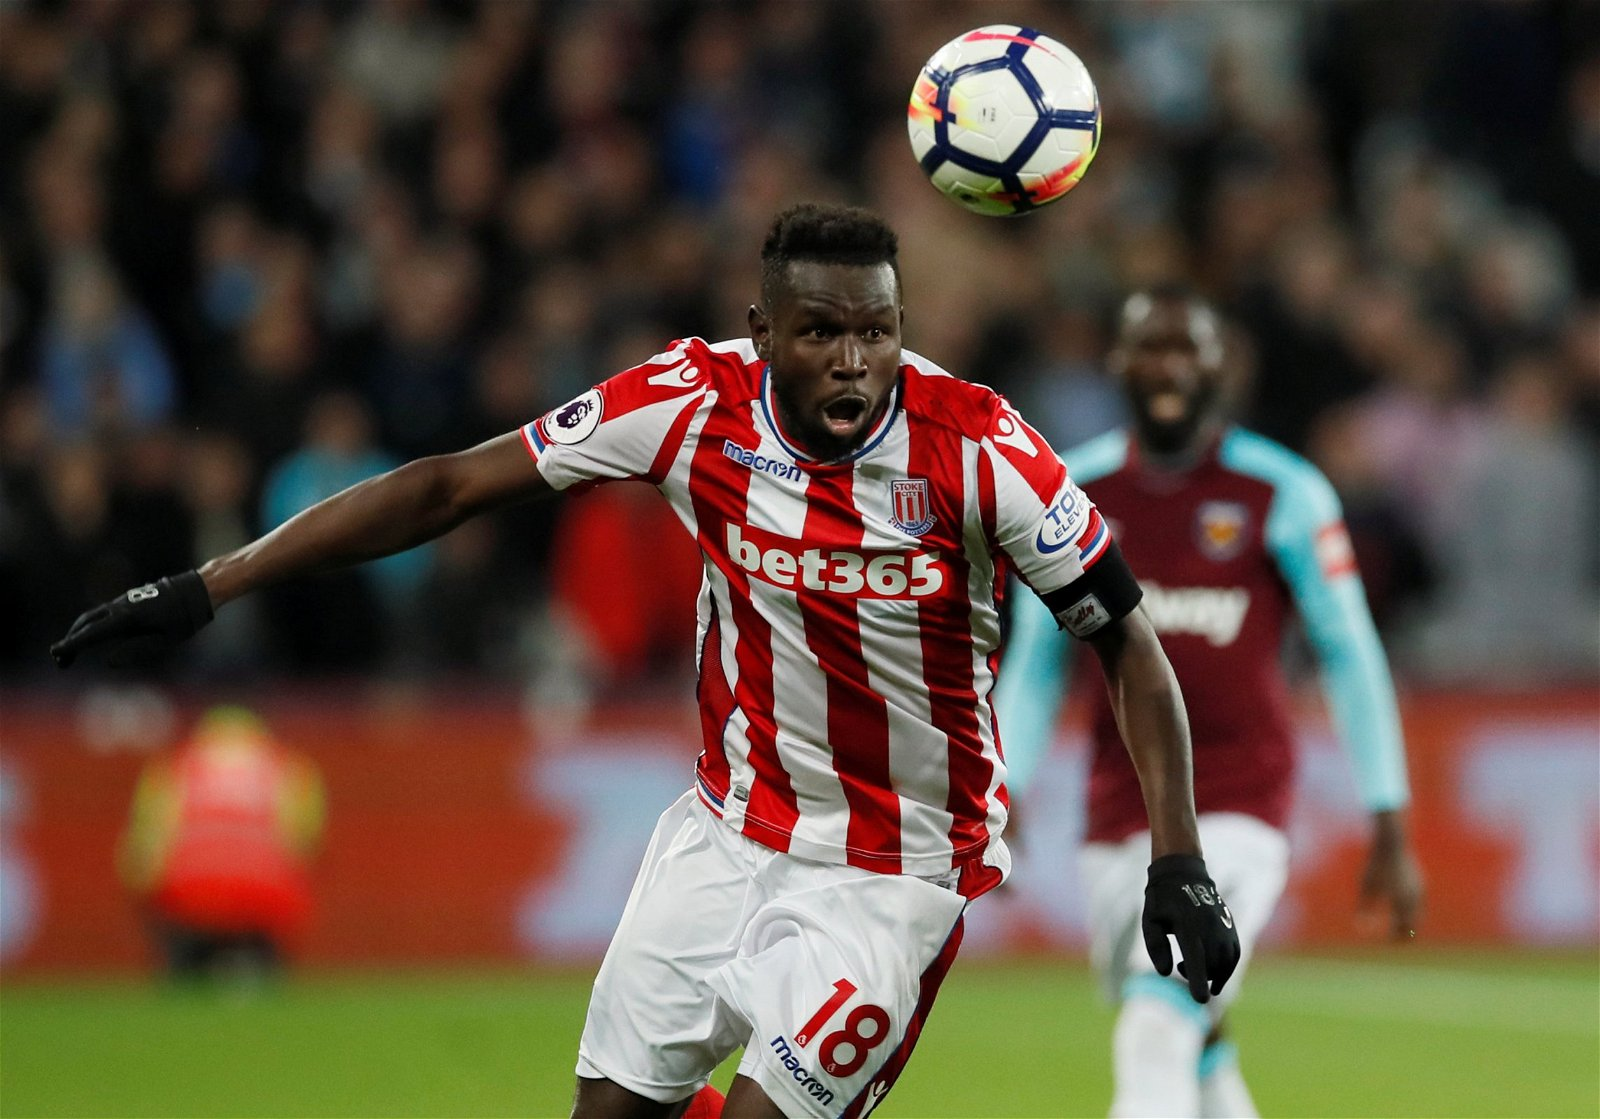 Mame Biram Diouf hunts down the ball against West Ham